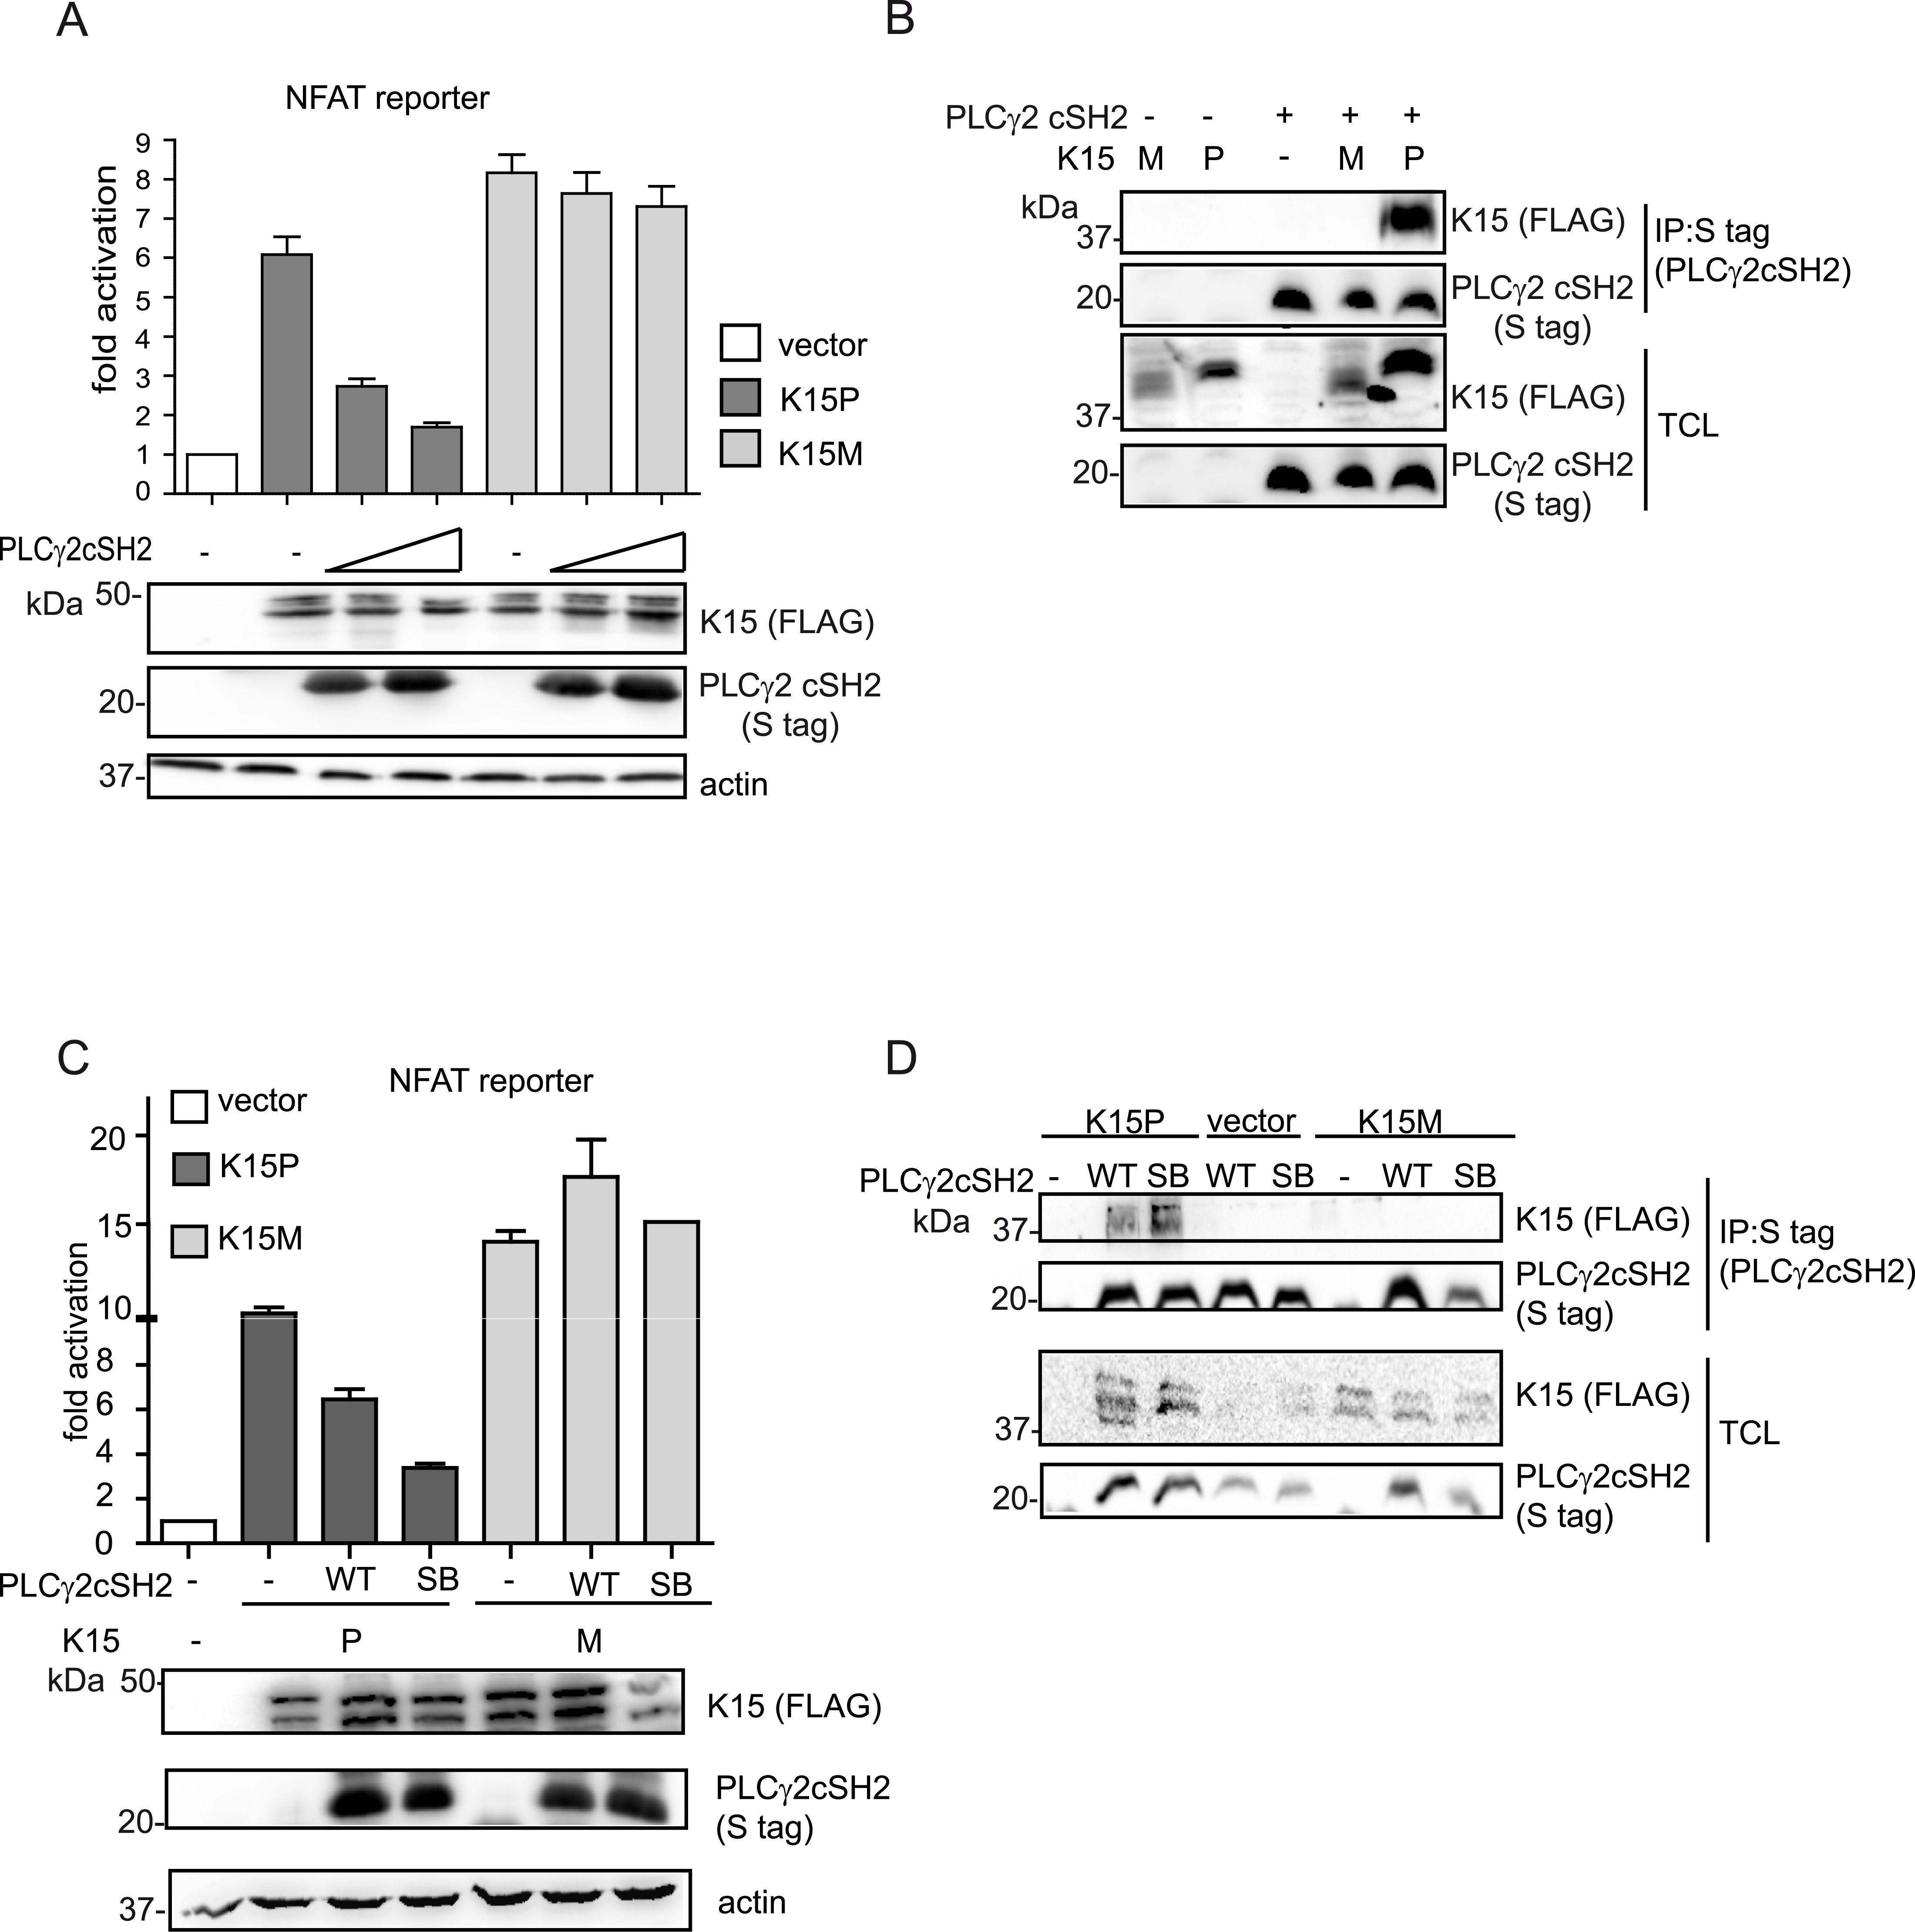 The isolated PLCγ2 cSH2 domain does not interact with K15M and has no effect on the activation of an NFAT promoter by K15M.